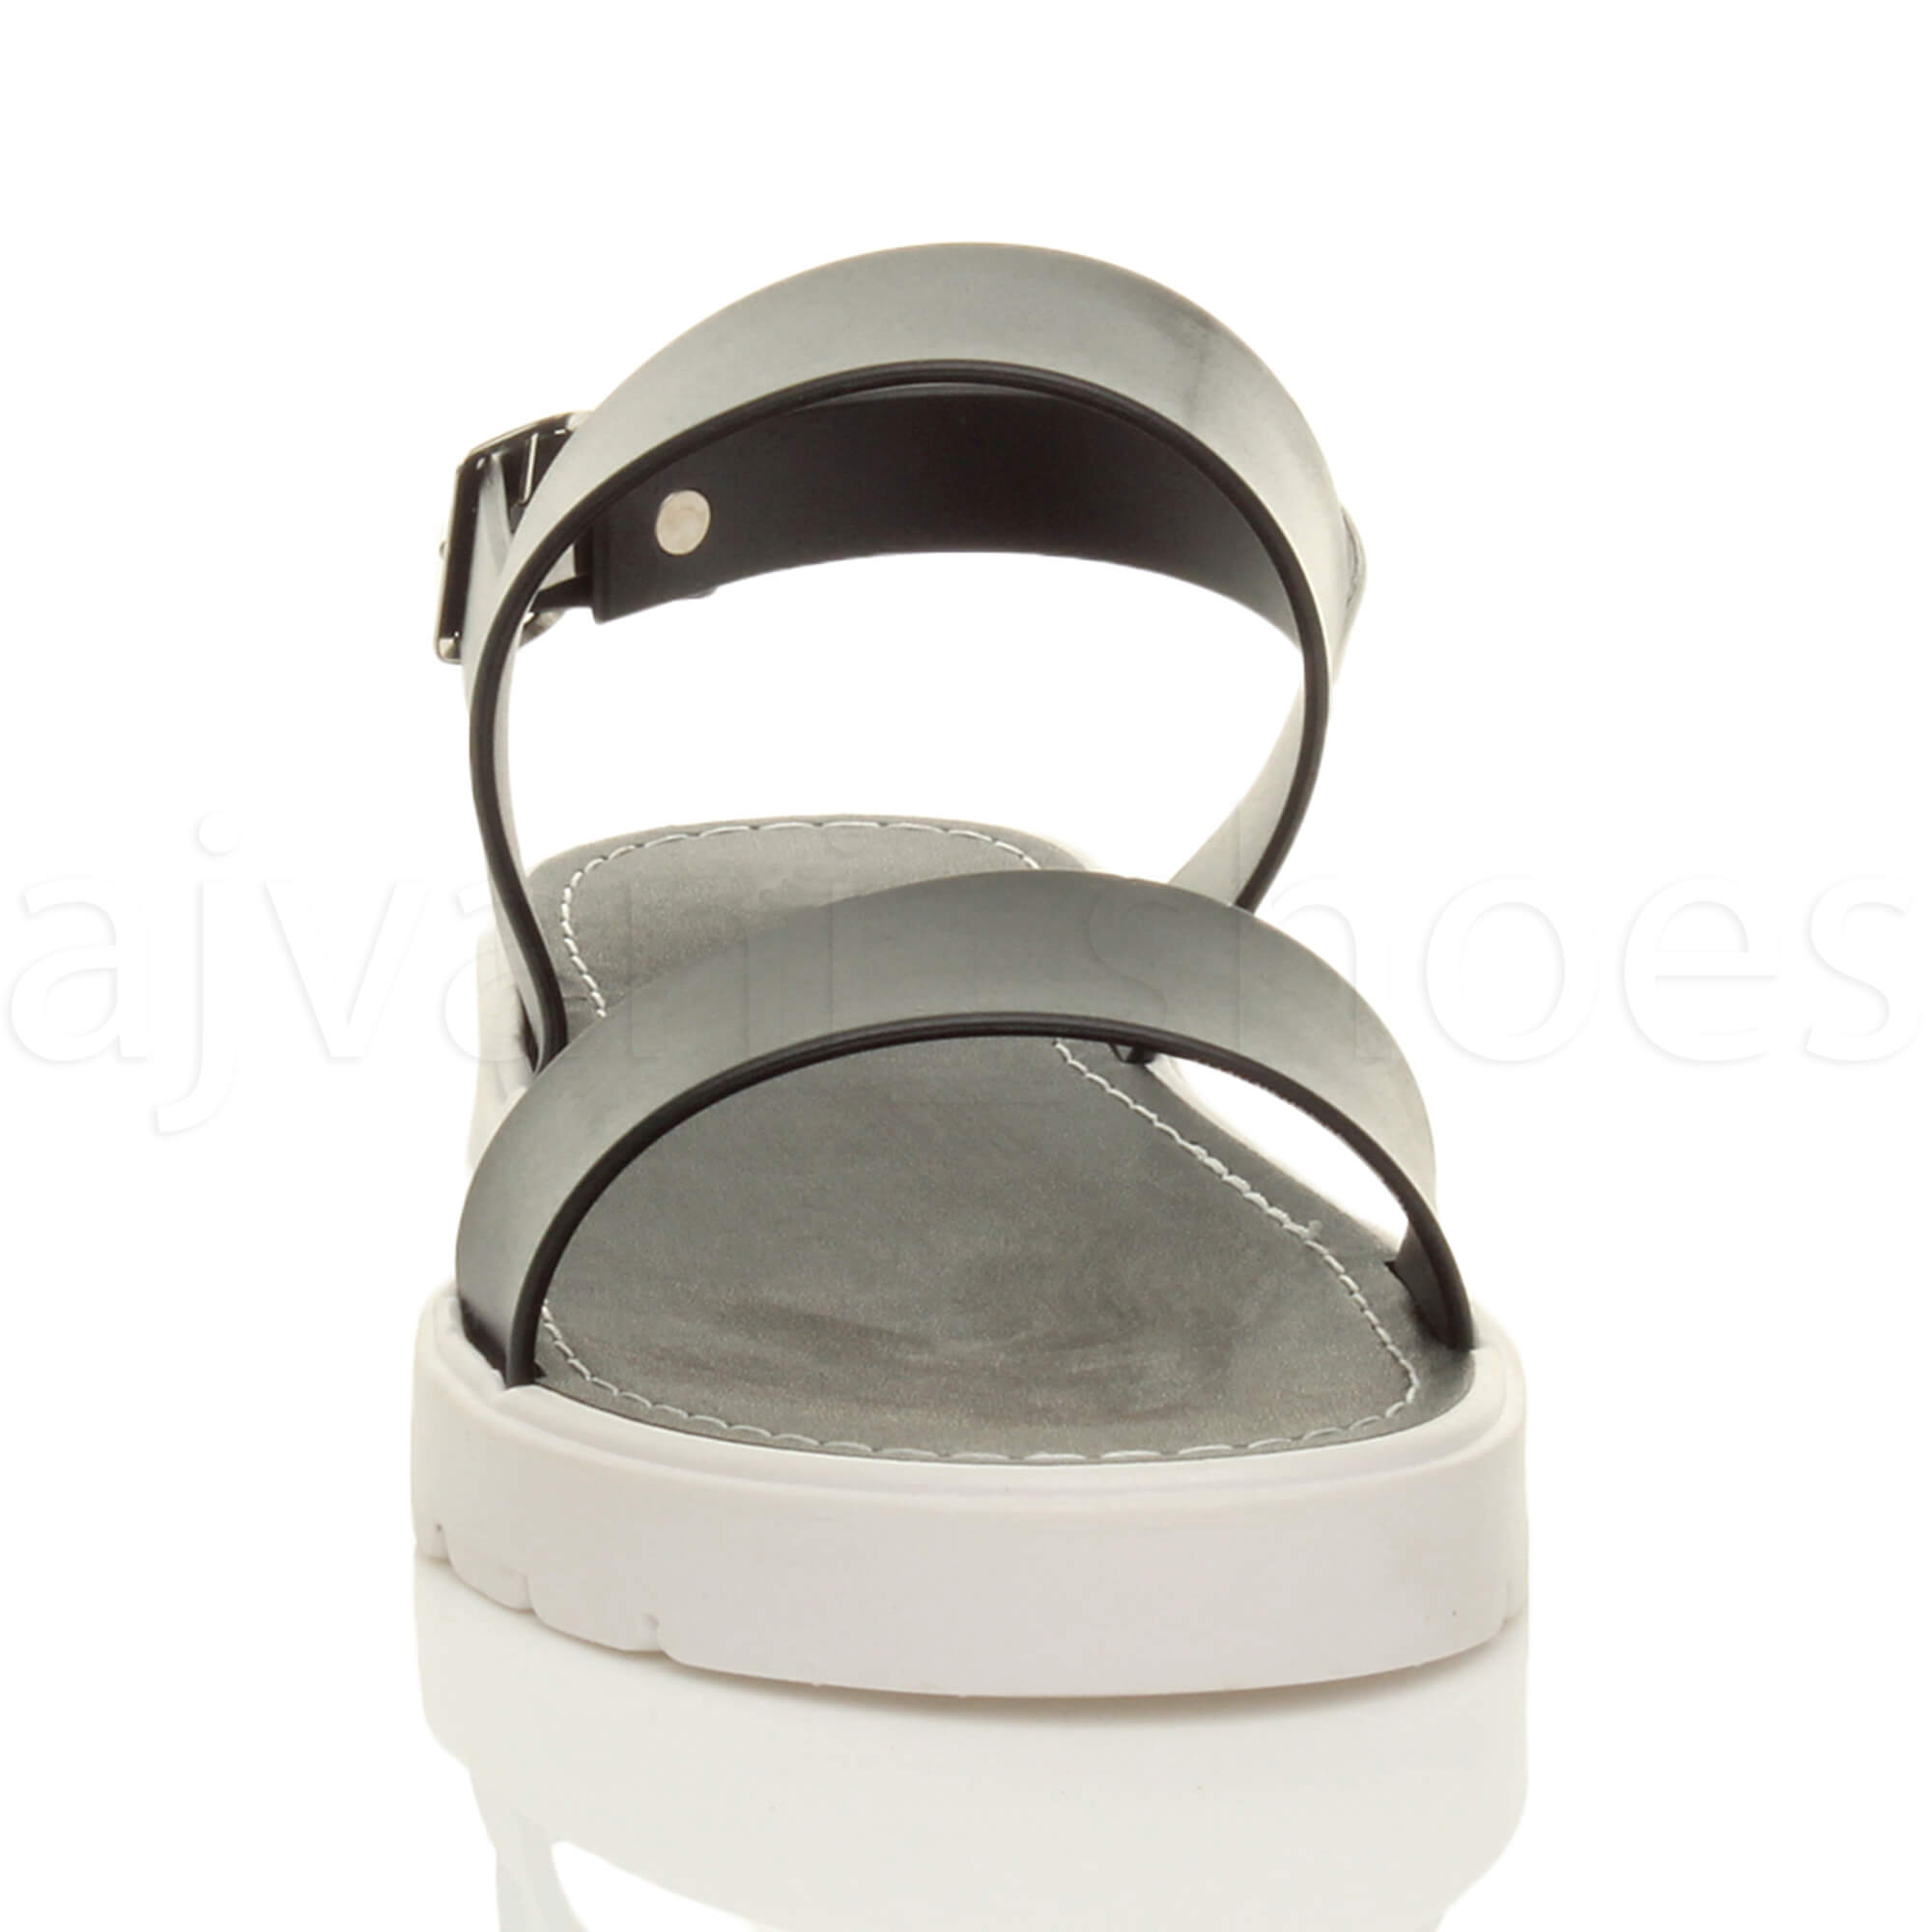 WOMENS-LADIES-FLAT-STRAPPY-BUCKLE-SLINGBACK-CLEATED-RUBBER-SUMMER-SANDALS-SIZE thumbnail 6